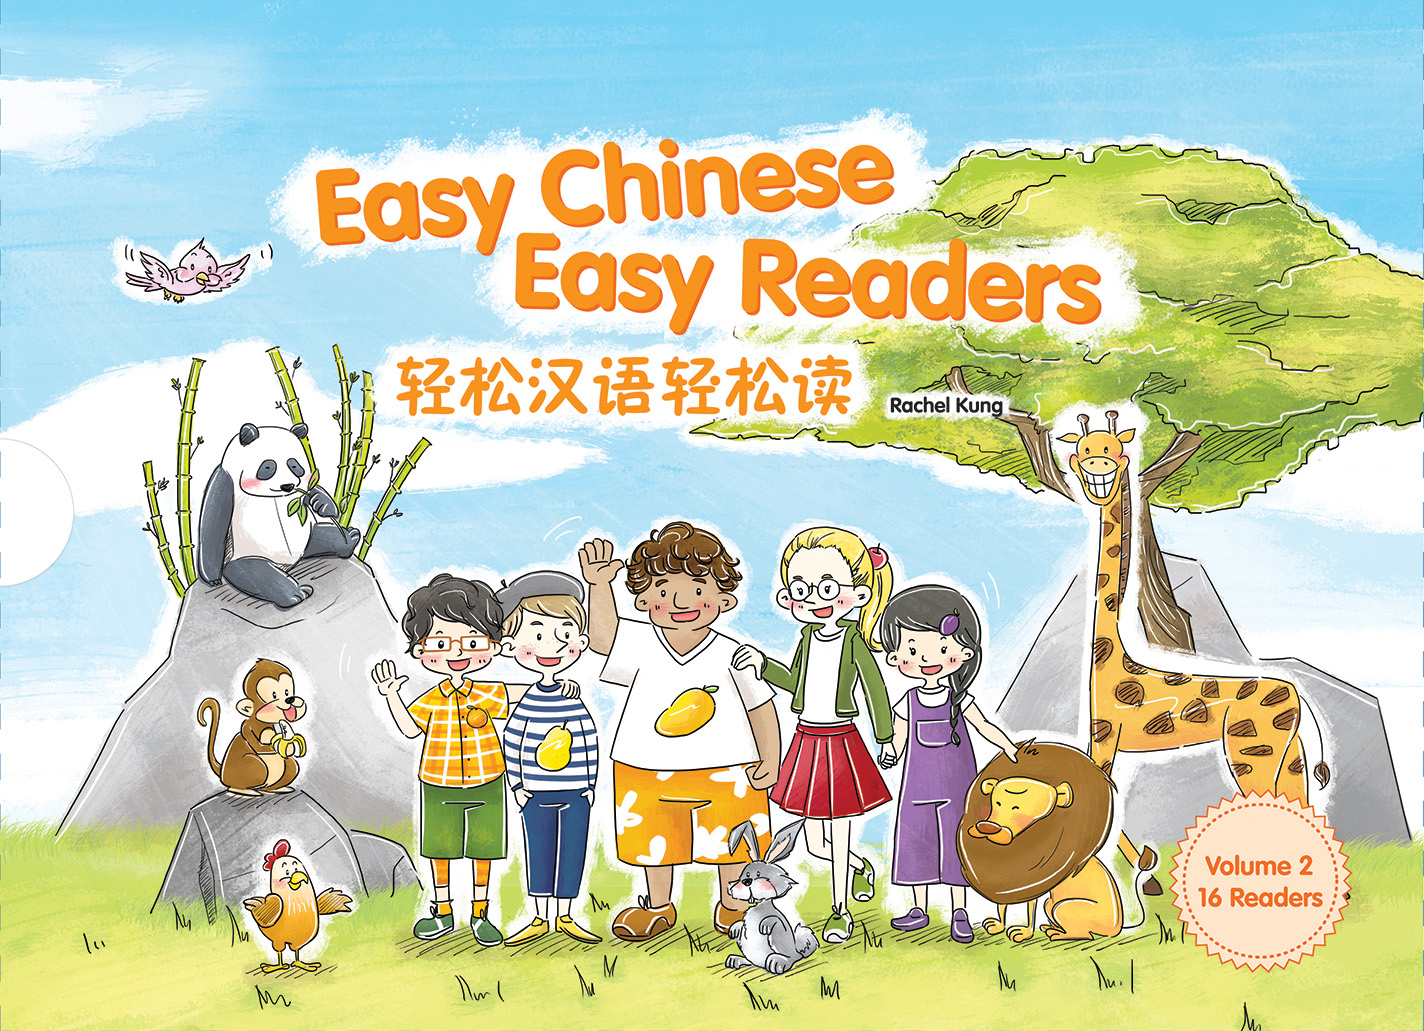 Easy Chinese Easy Readers Volume 2